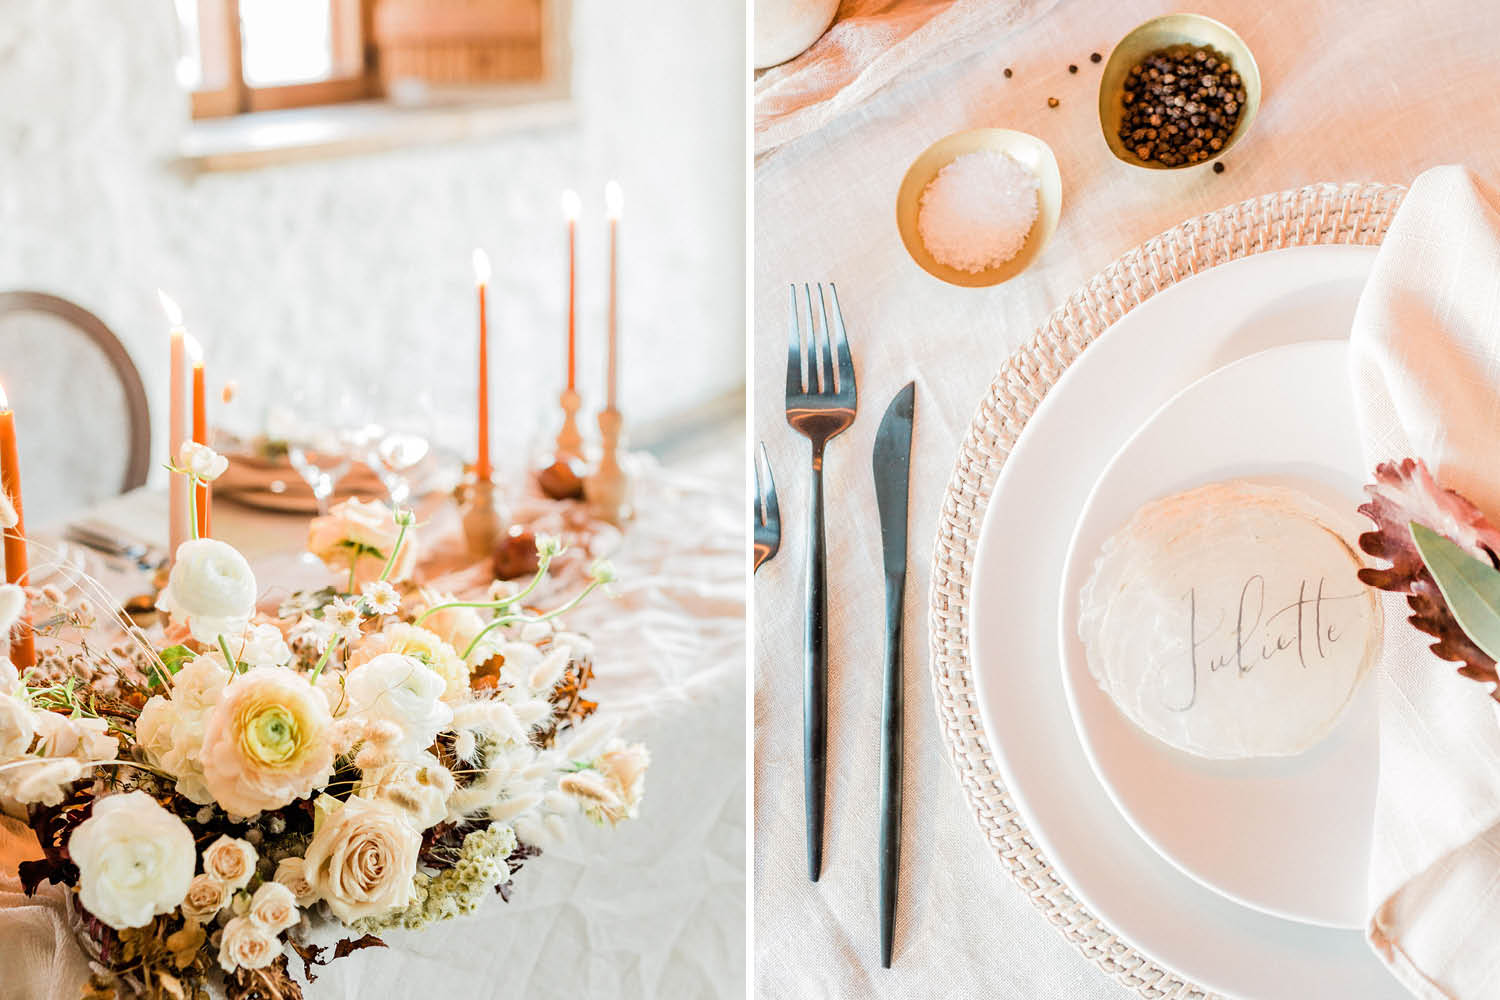 French Farm House Inspired Wedding in Quebec Auberge Saint-Antoine - Wedding Reception Table Details